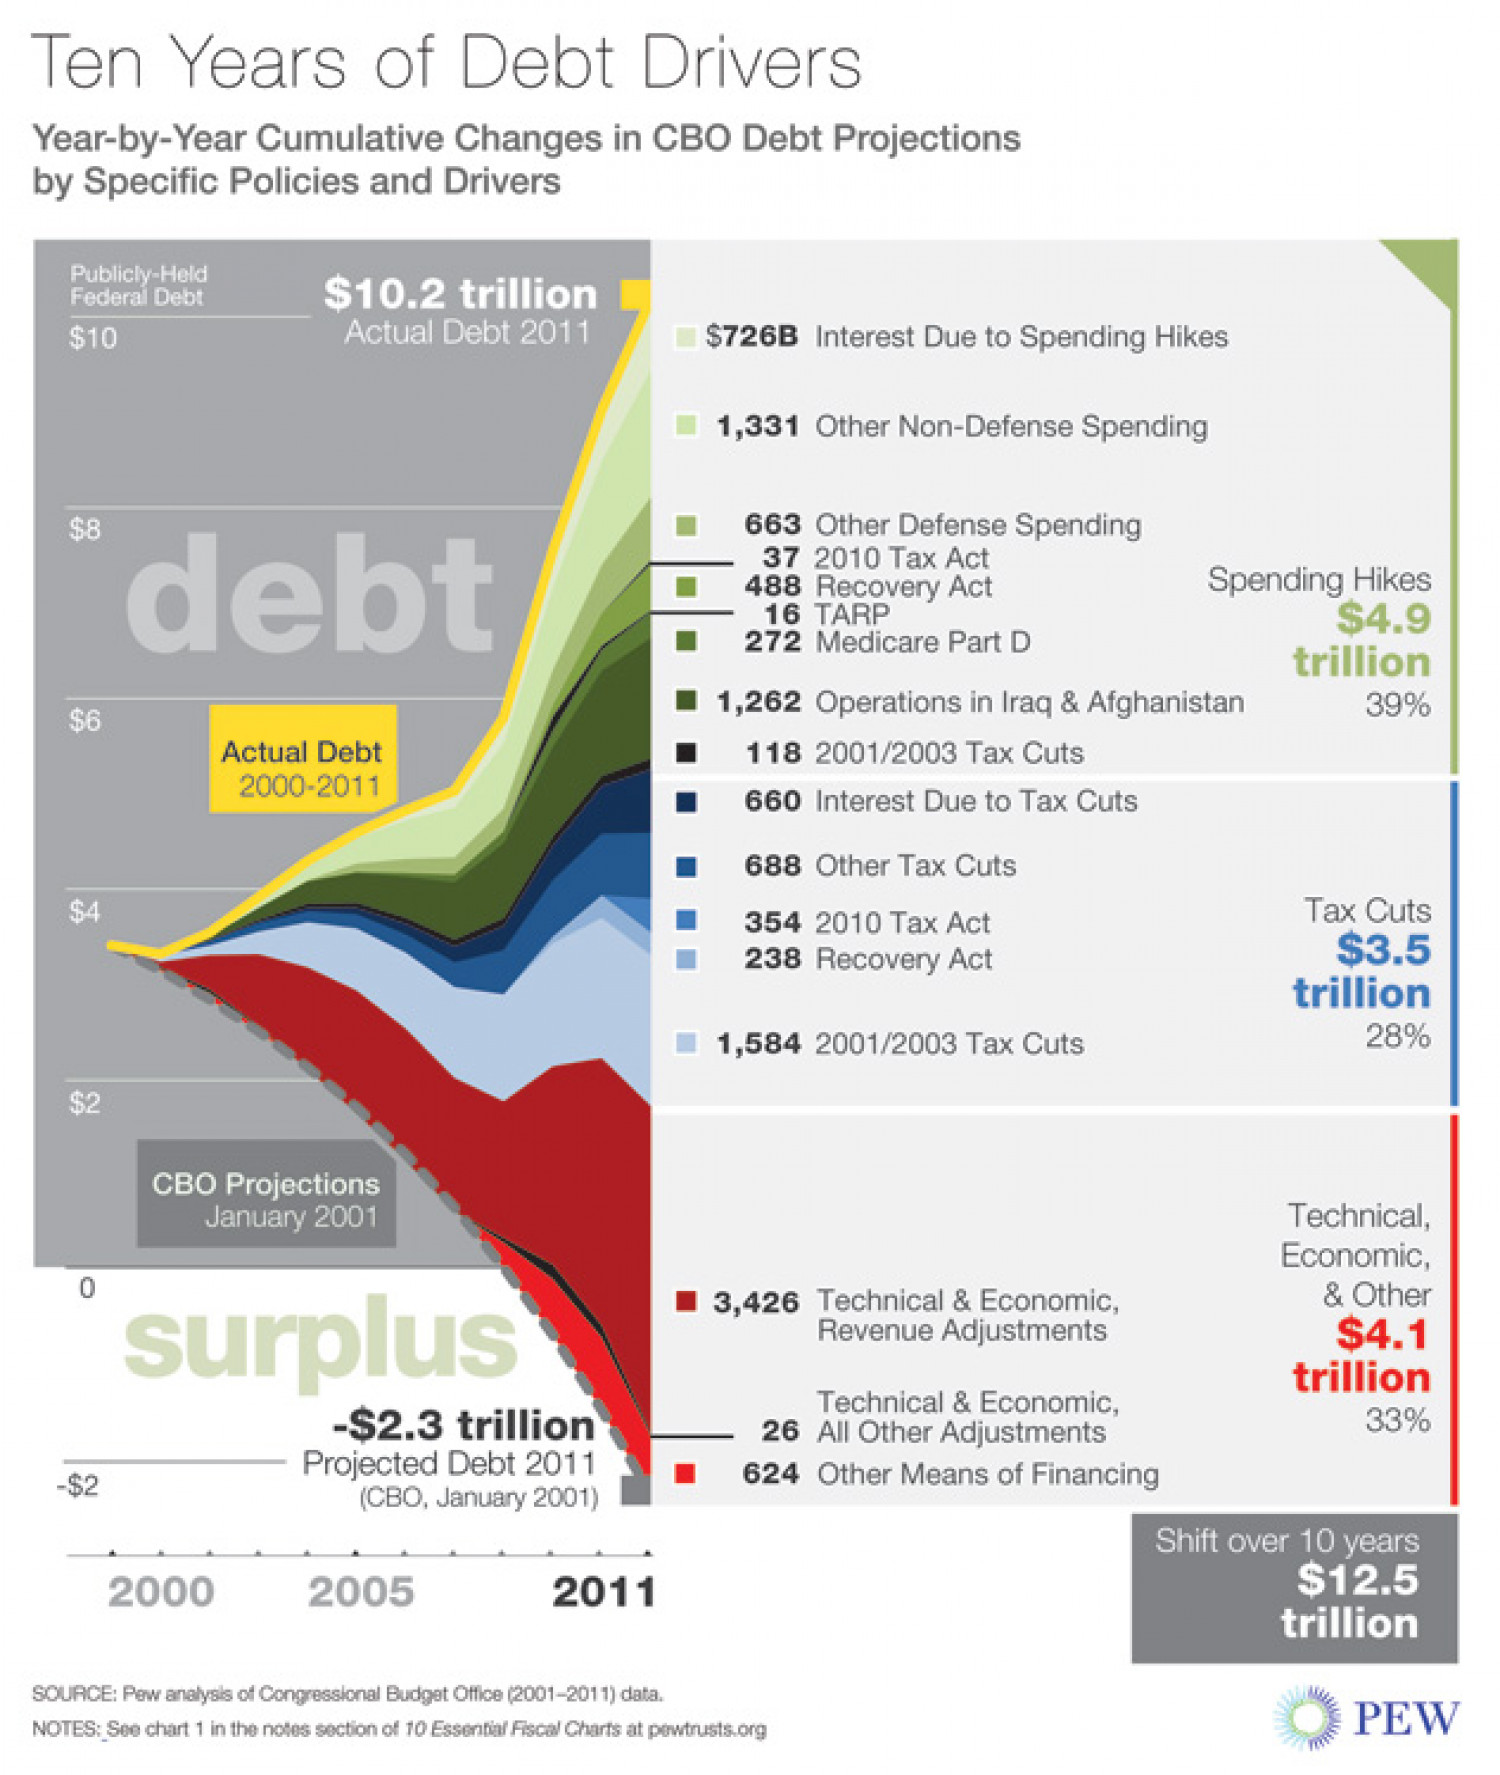 Ten Years of Debt Drivers Infographic